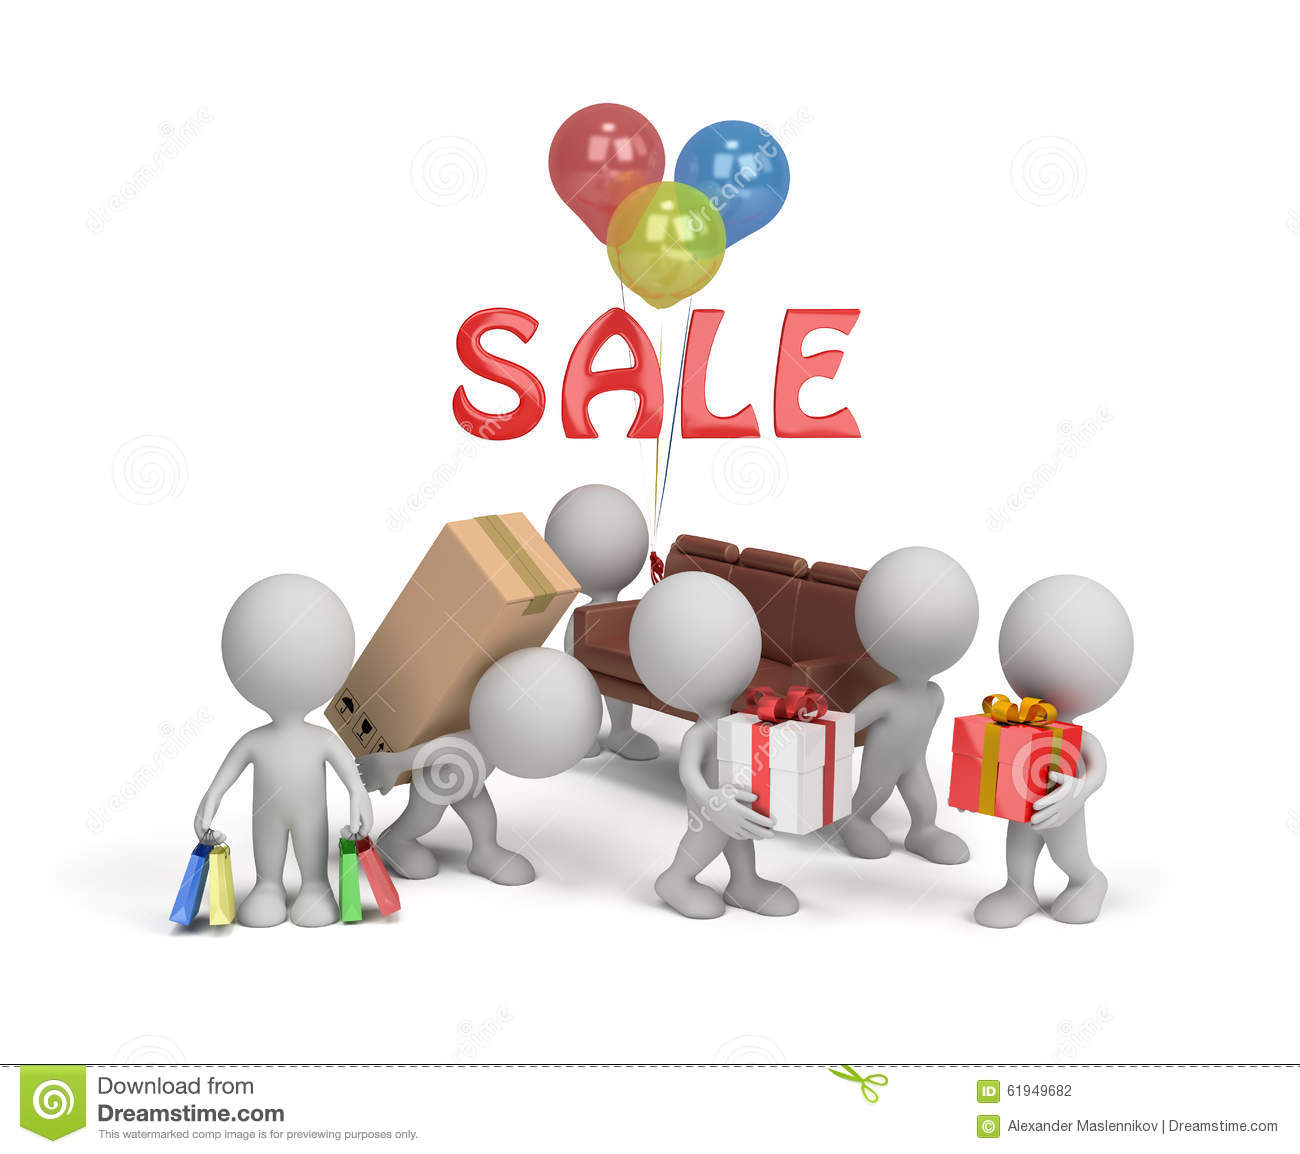 Discounted Home Goods: Sale Of Goods Stock Illustration